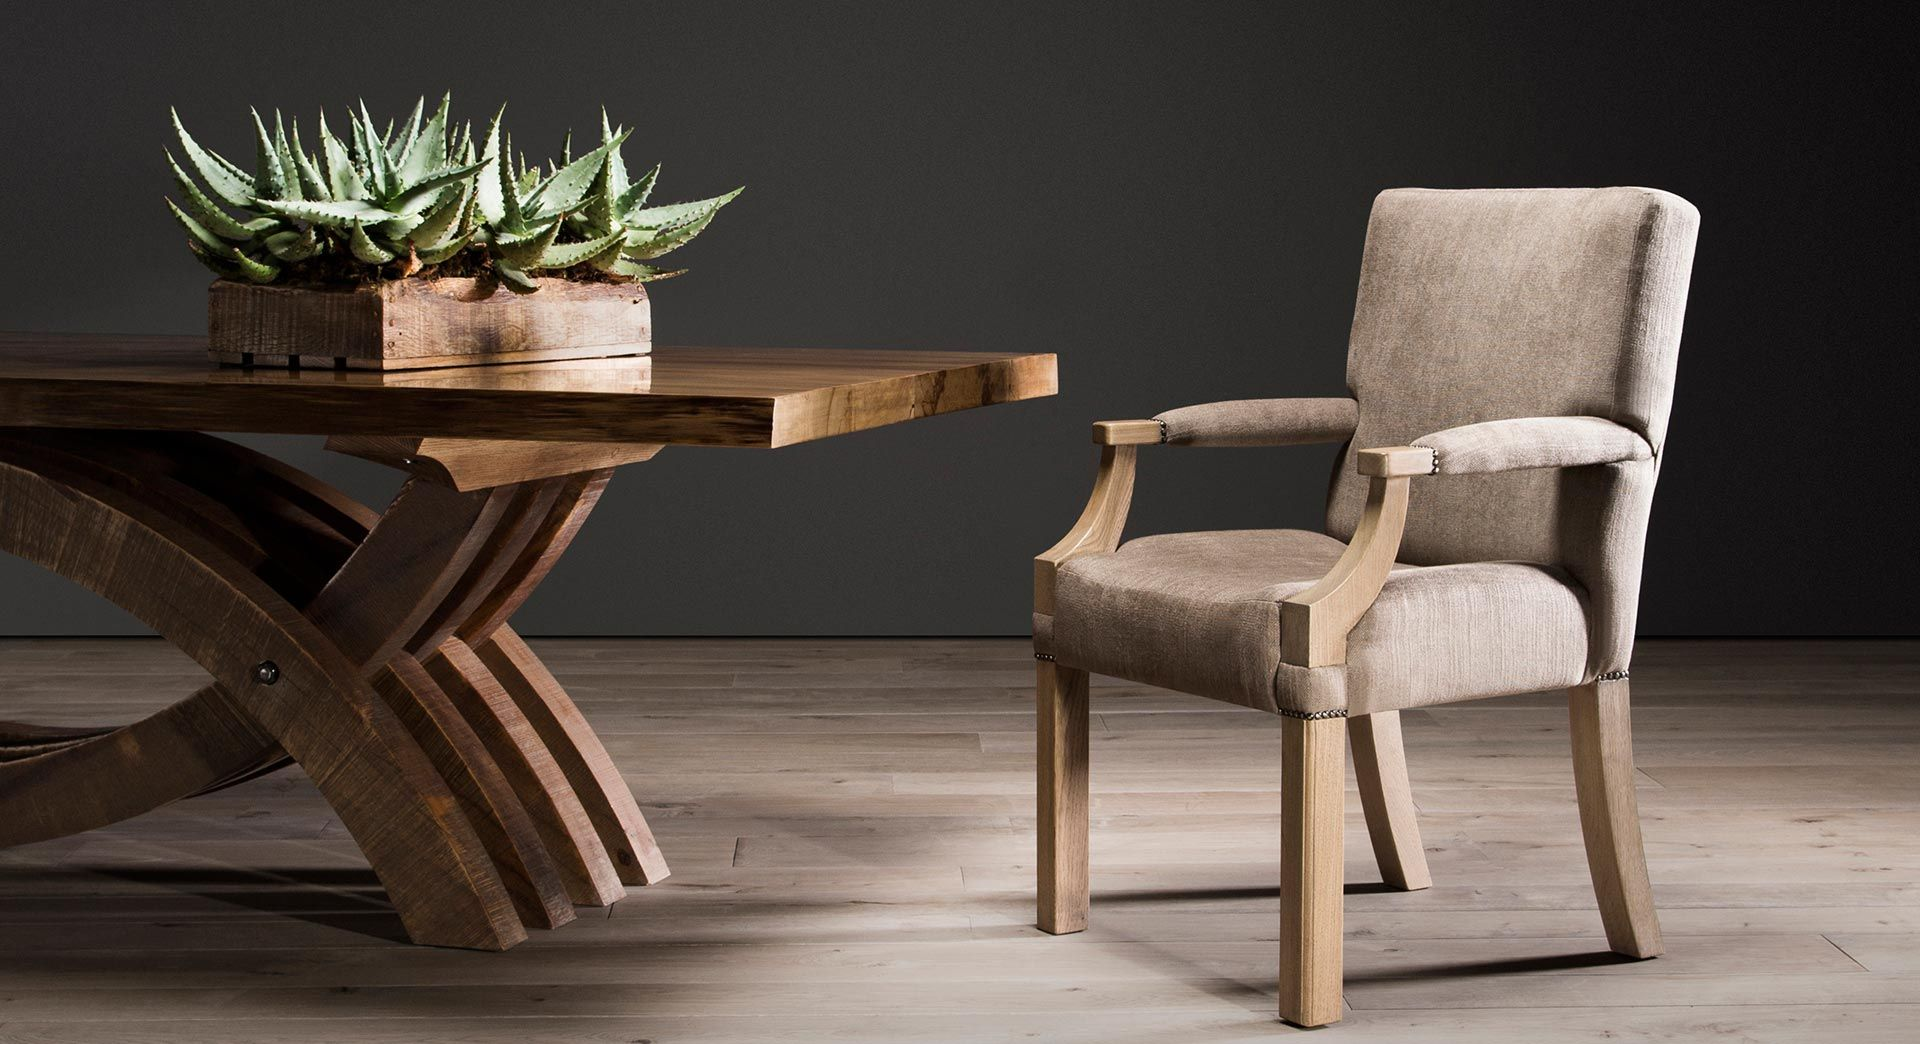 Pierre cronje harker dining table in yellowwood brown wash with a